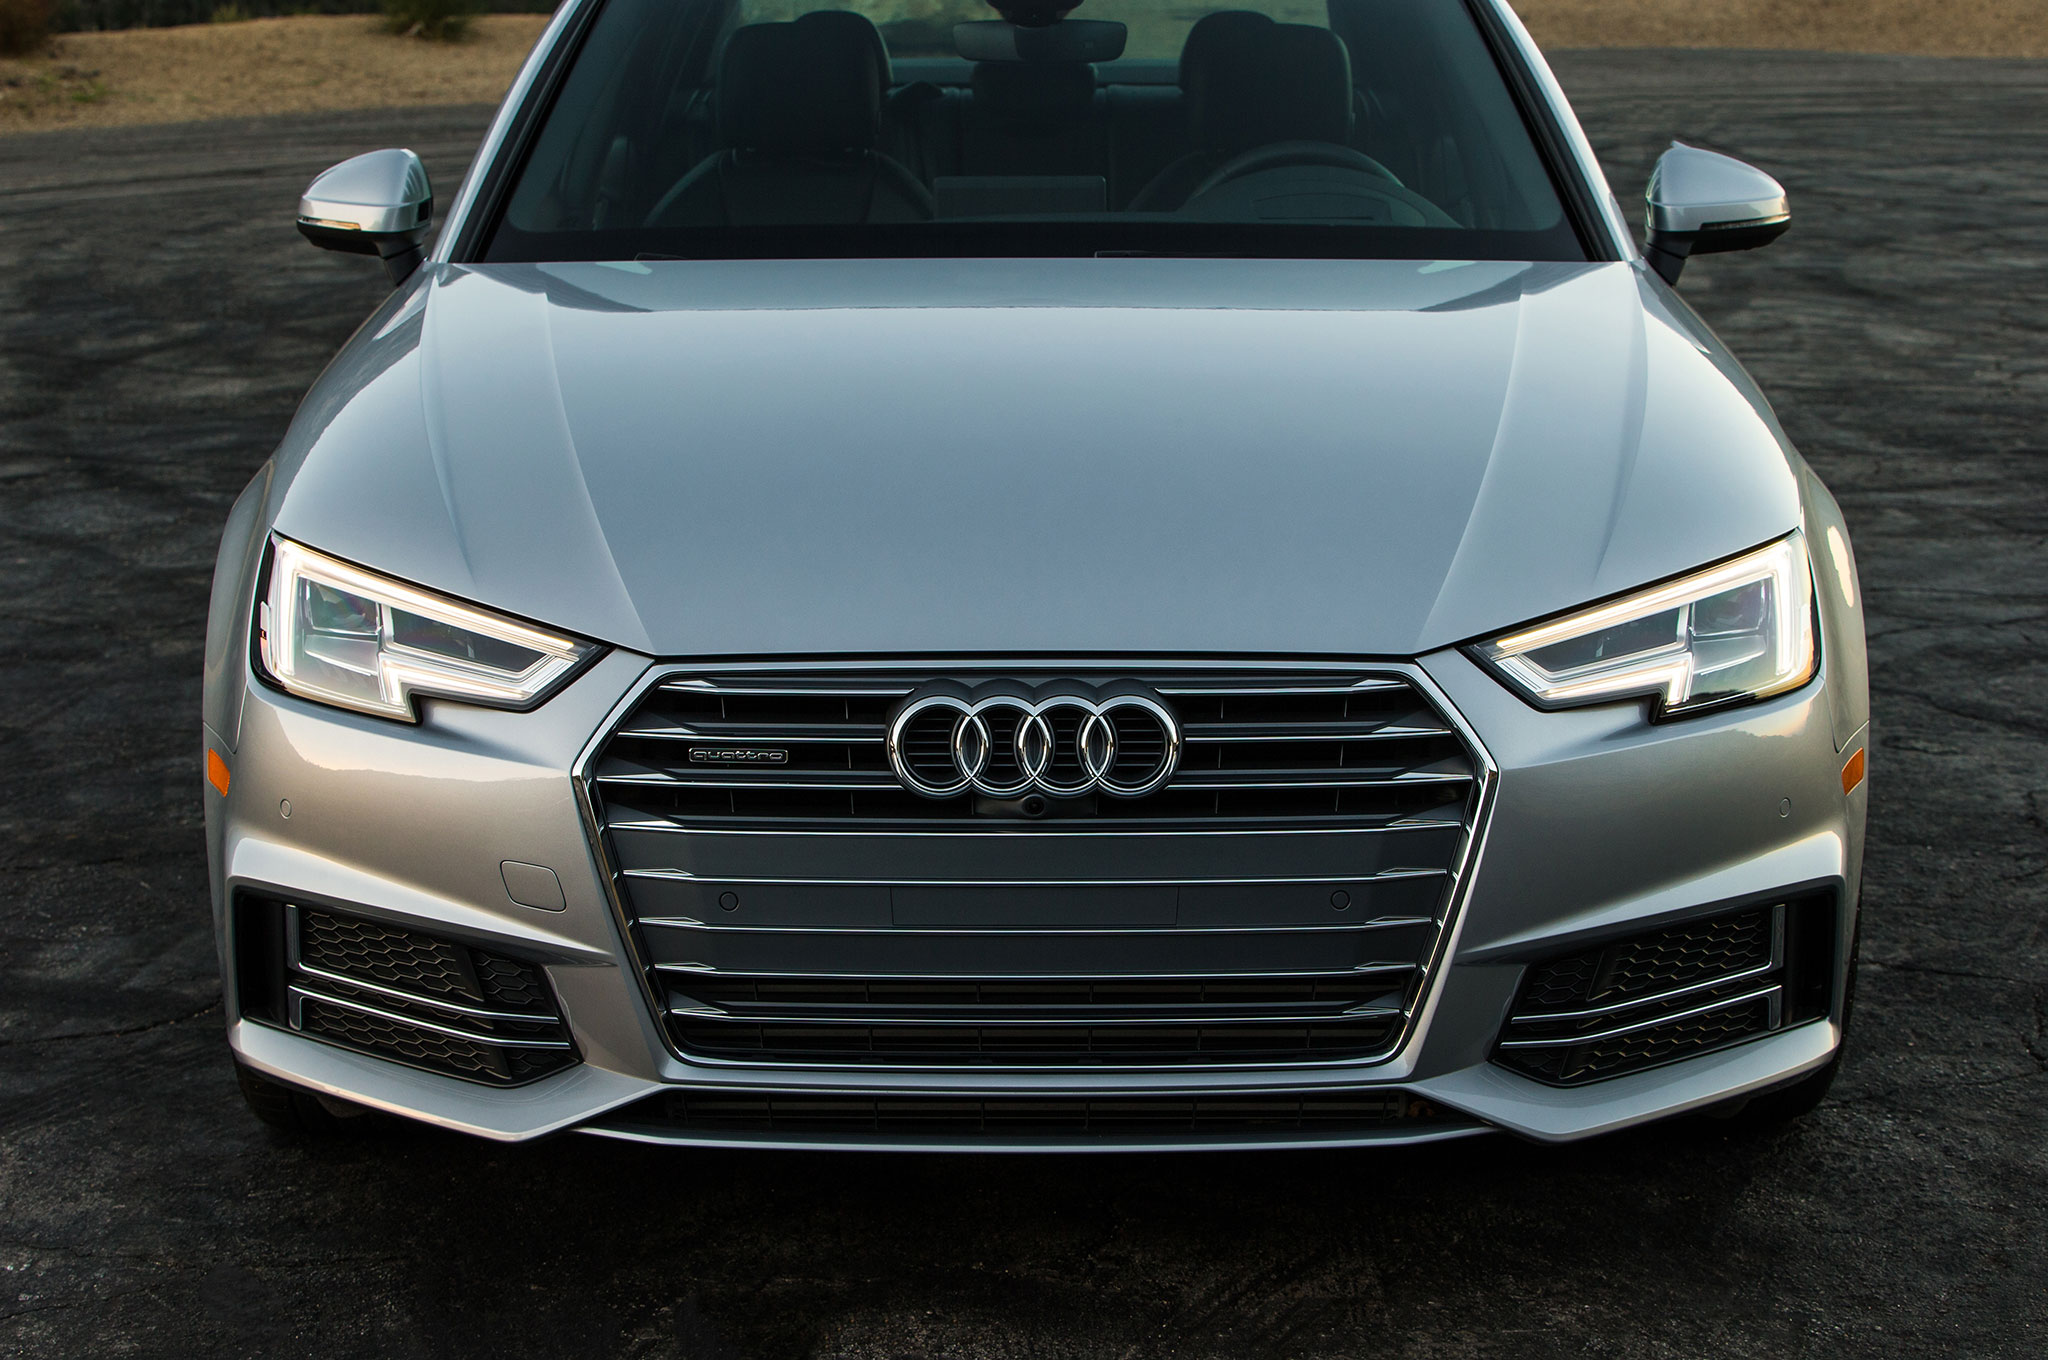 What Are The Design Performance Features Of The Audi A4